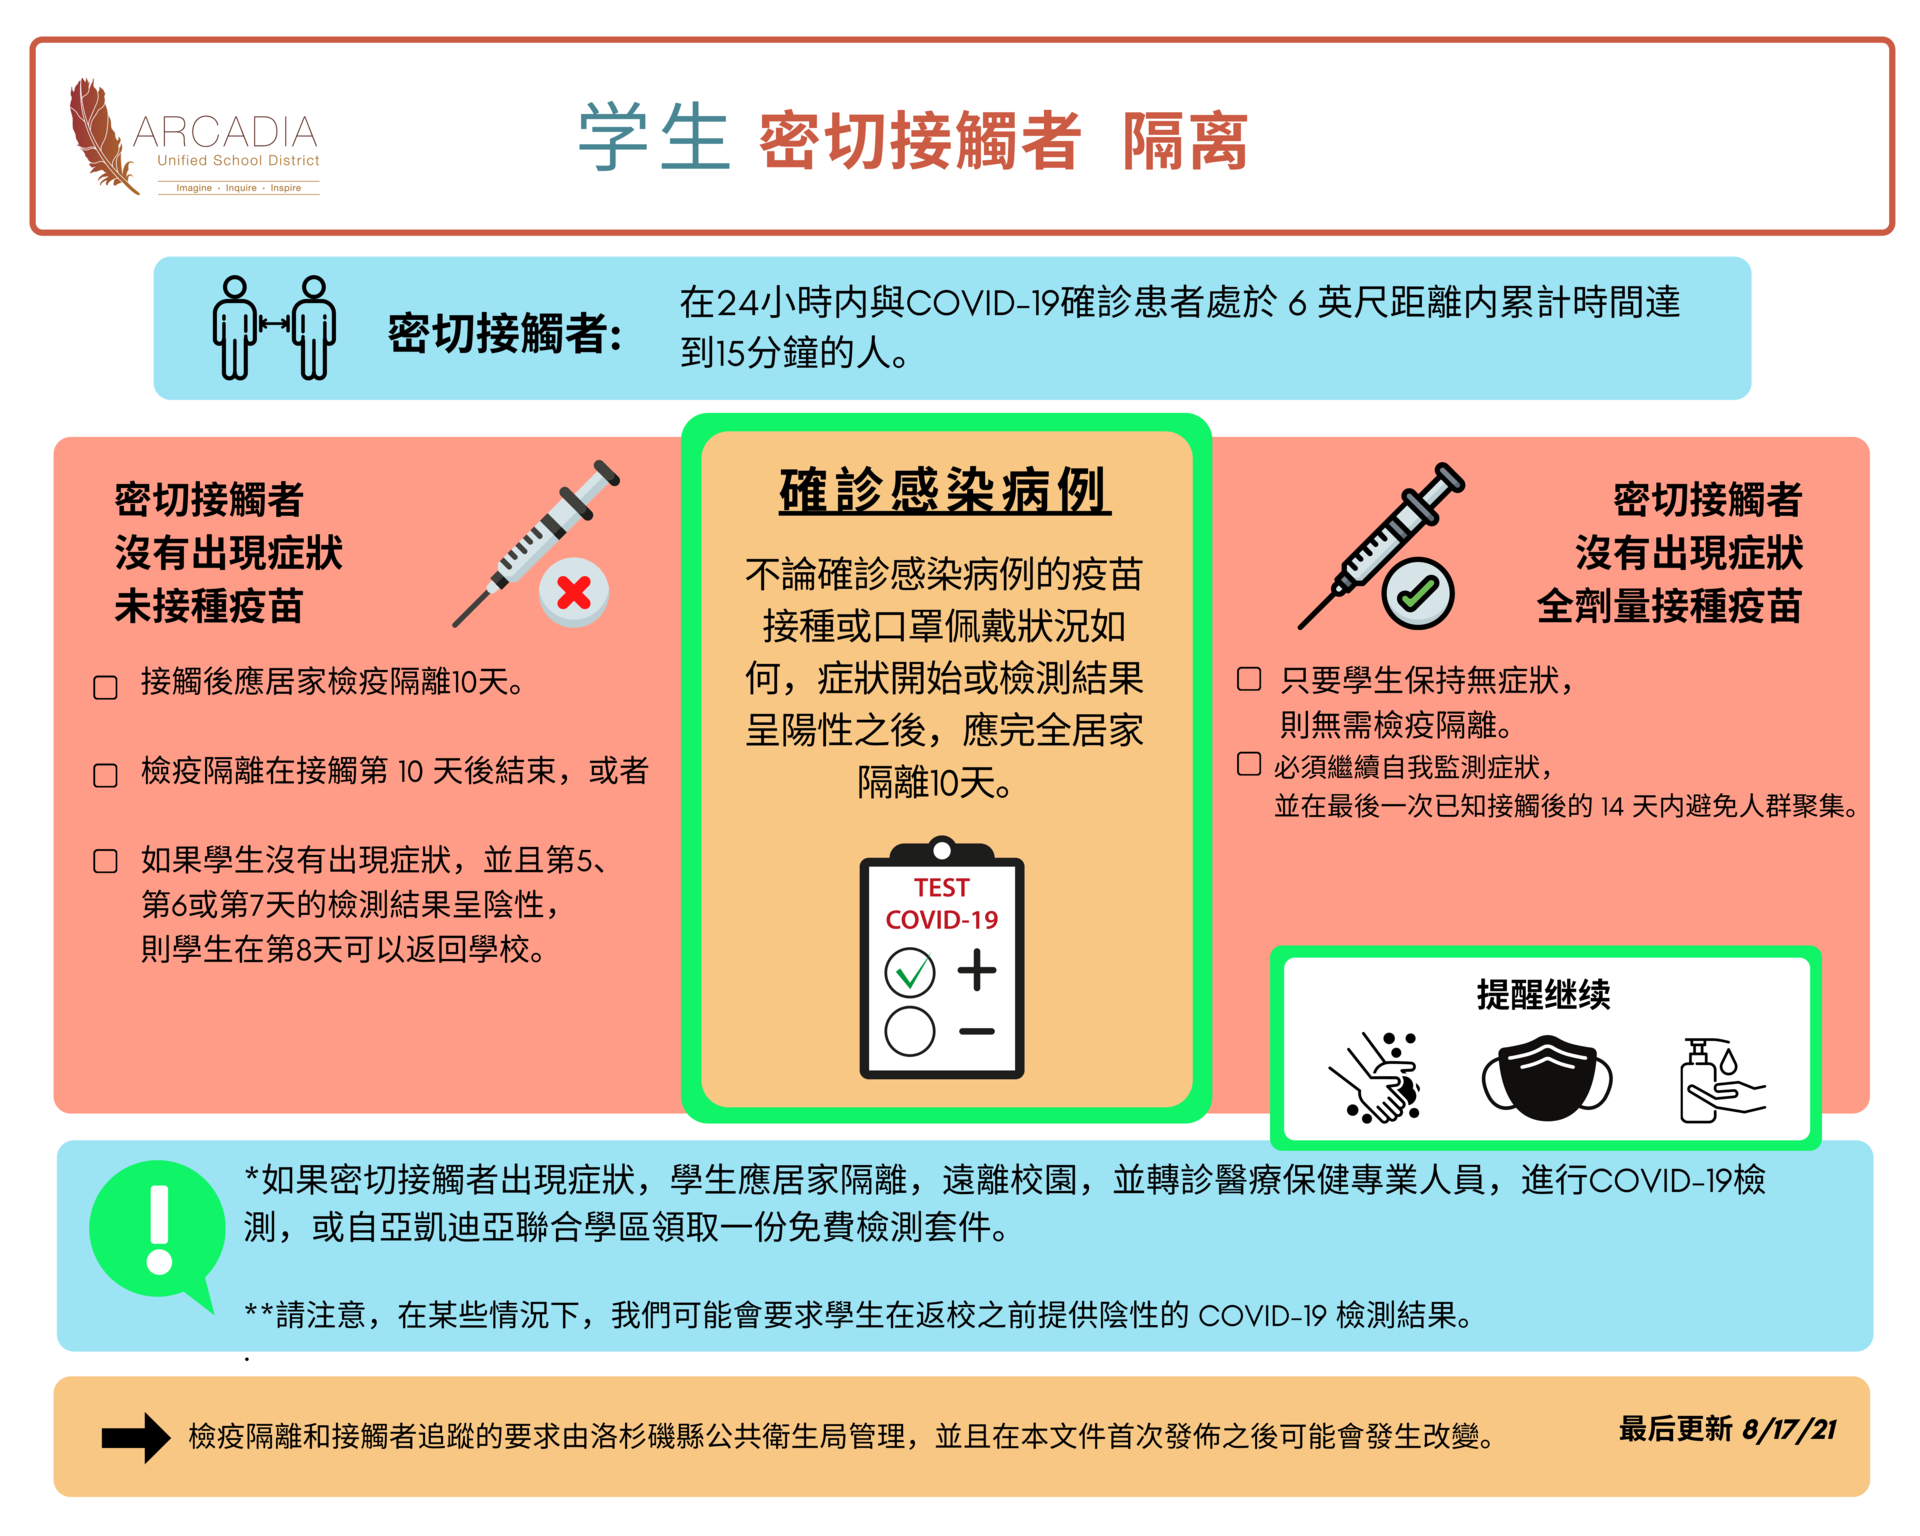 Chinese Translation of close contacts and quarantine guidelines